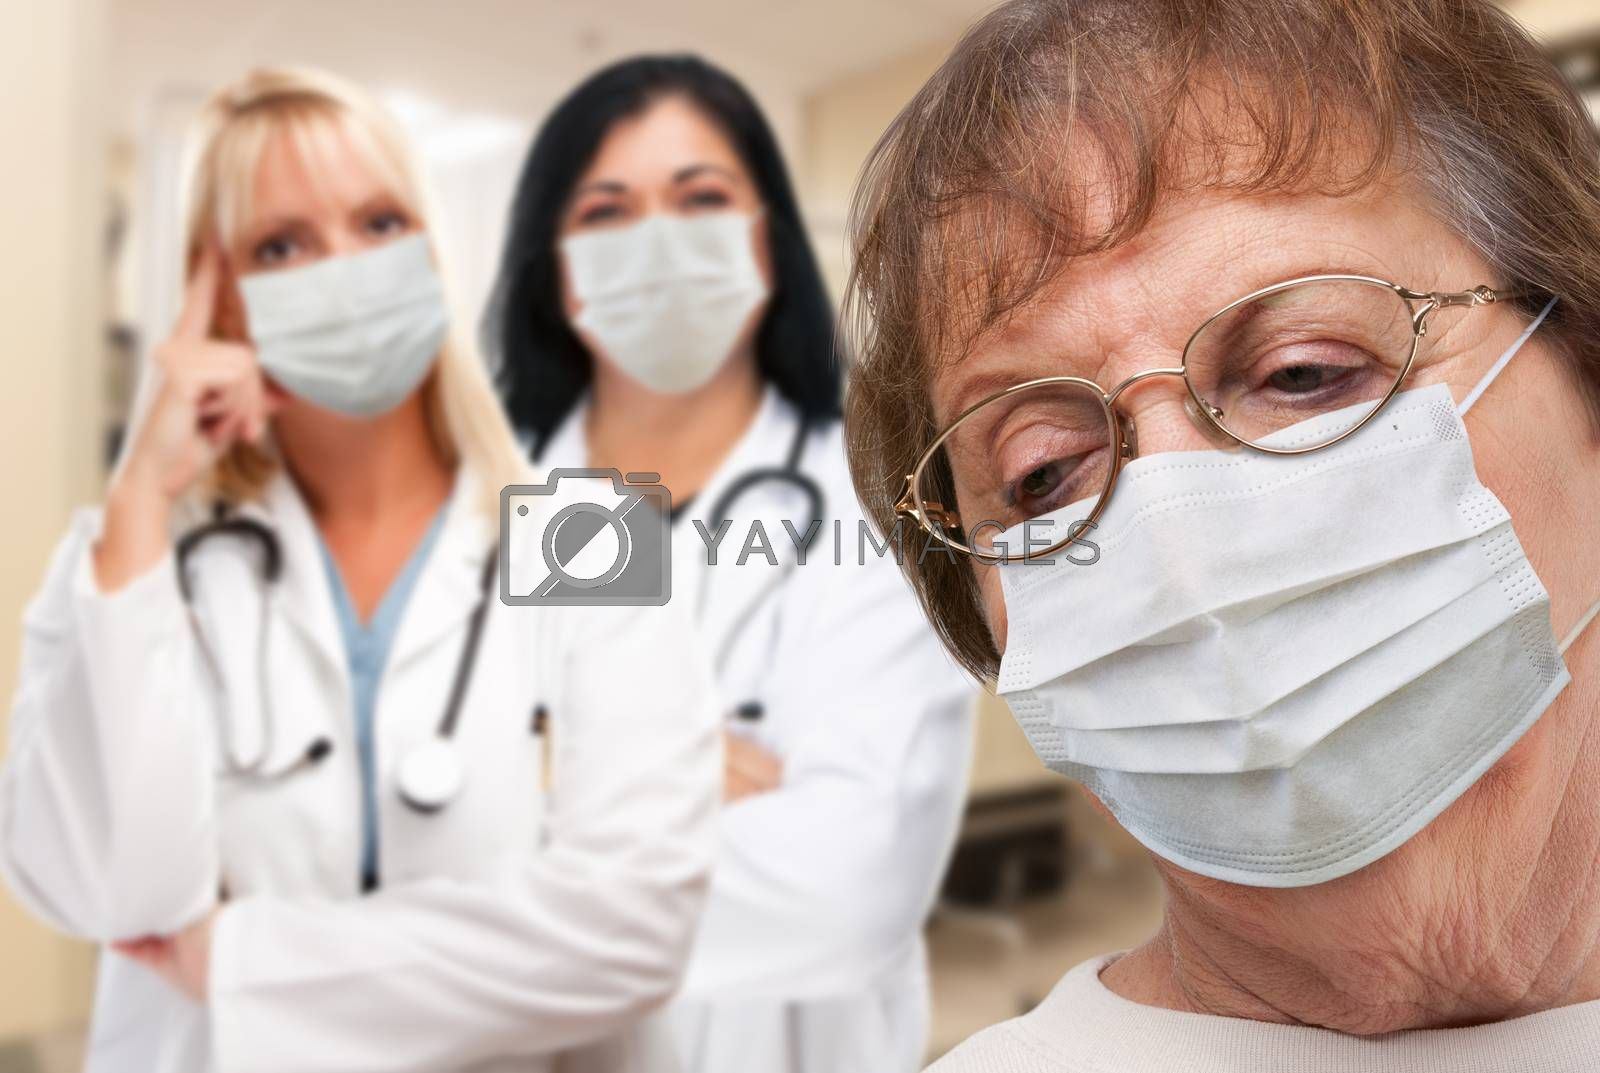 Senior Adult Female Looking Down as Doctors stand Behind All Wearing Medical Face Masks.